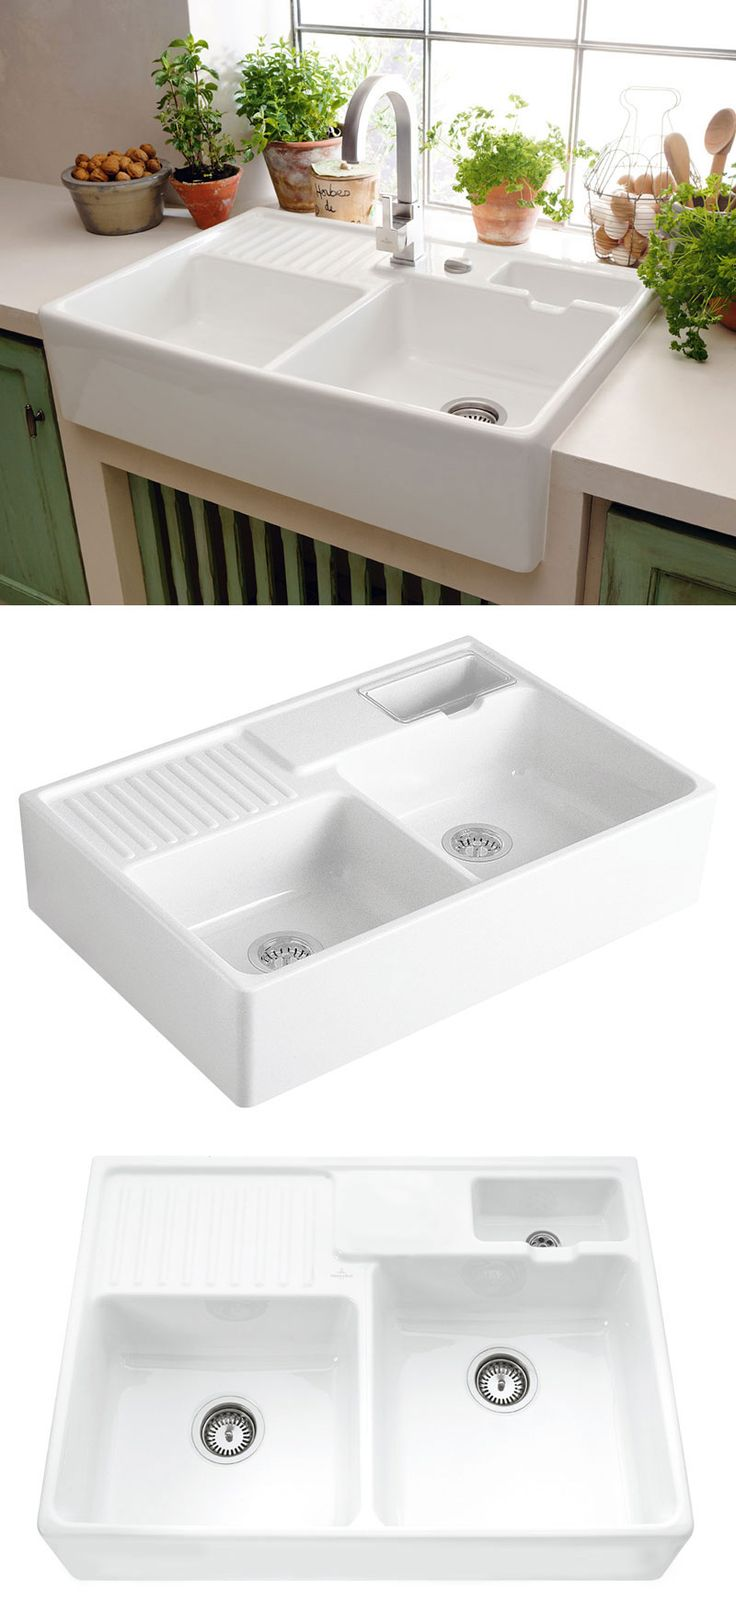 Villeroy and Boch Butler 2.25 bowl Belfast sink. http://www.sinks-taps.com/item-465-BUTLER_2_25_Bowl_Belfast_Sink_.aspx